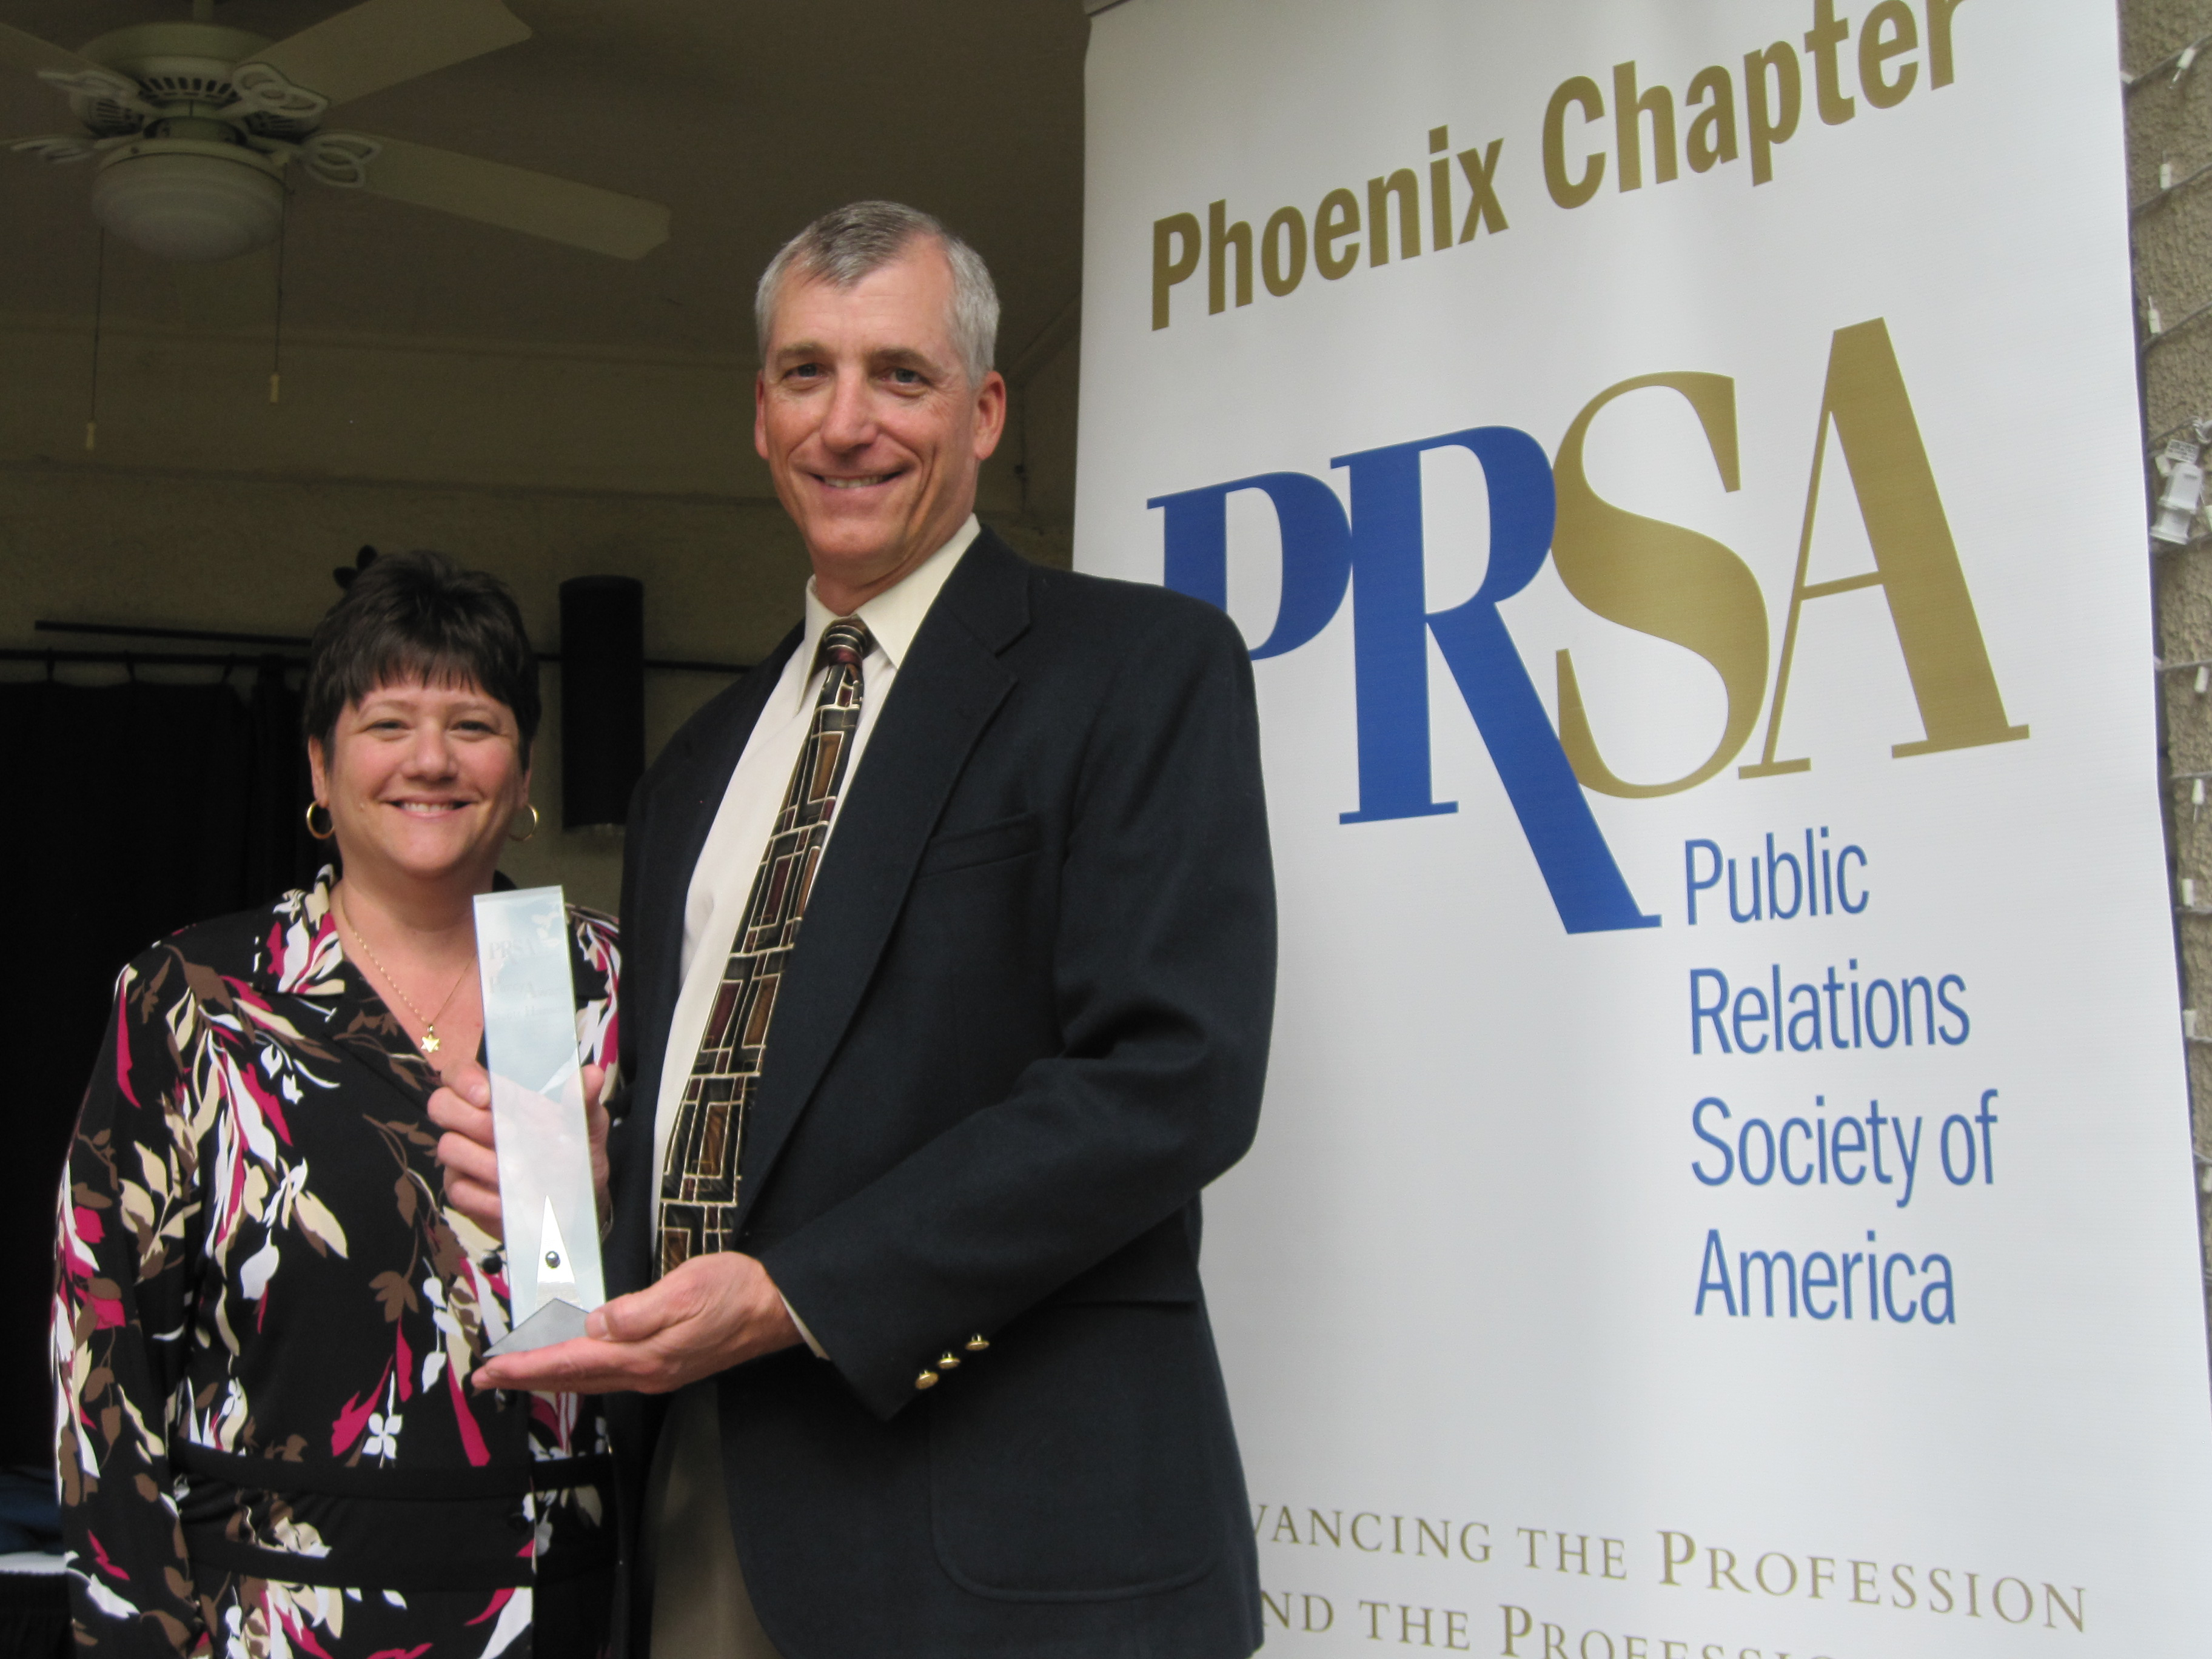 Scott Hanson with business partner Abbie S. Fink at the 2012 PRSA Phoenix Percy Awards. He will accept another lifetime achievement honor - the Emmy Silver Circle - on October 6.